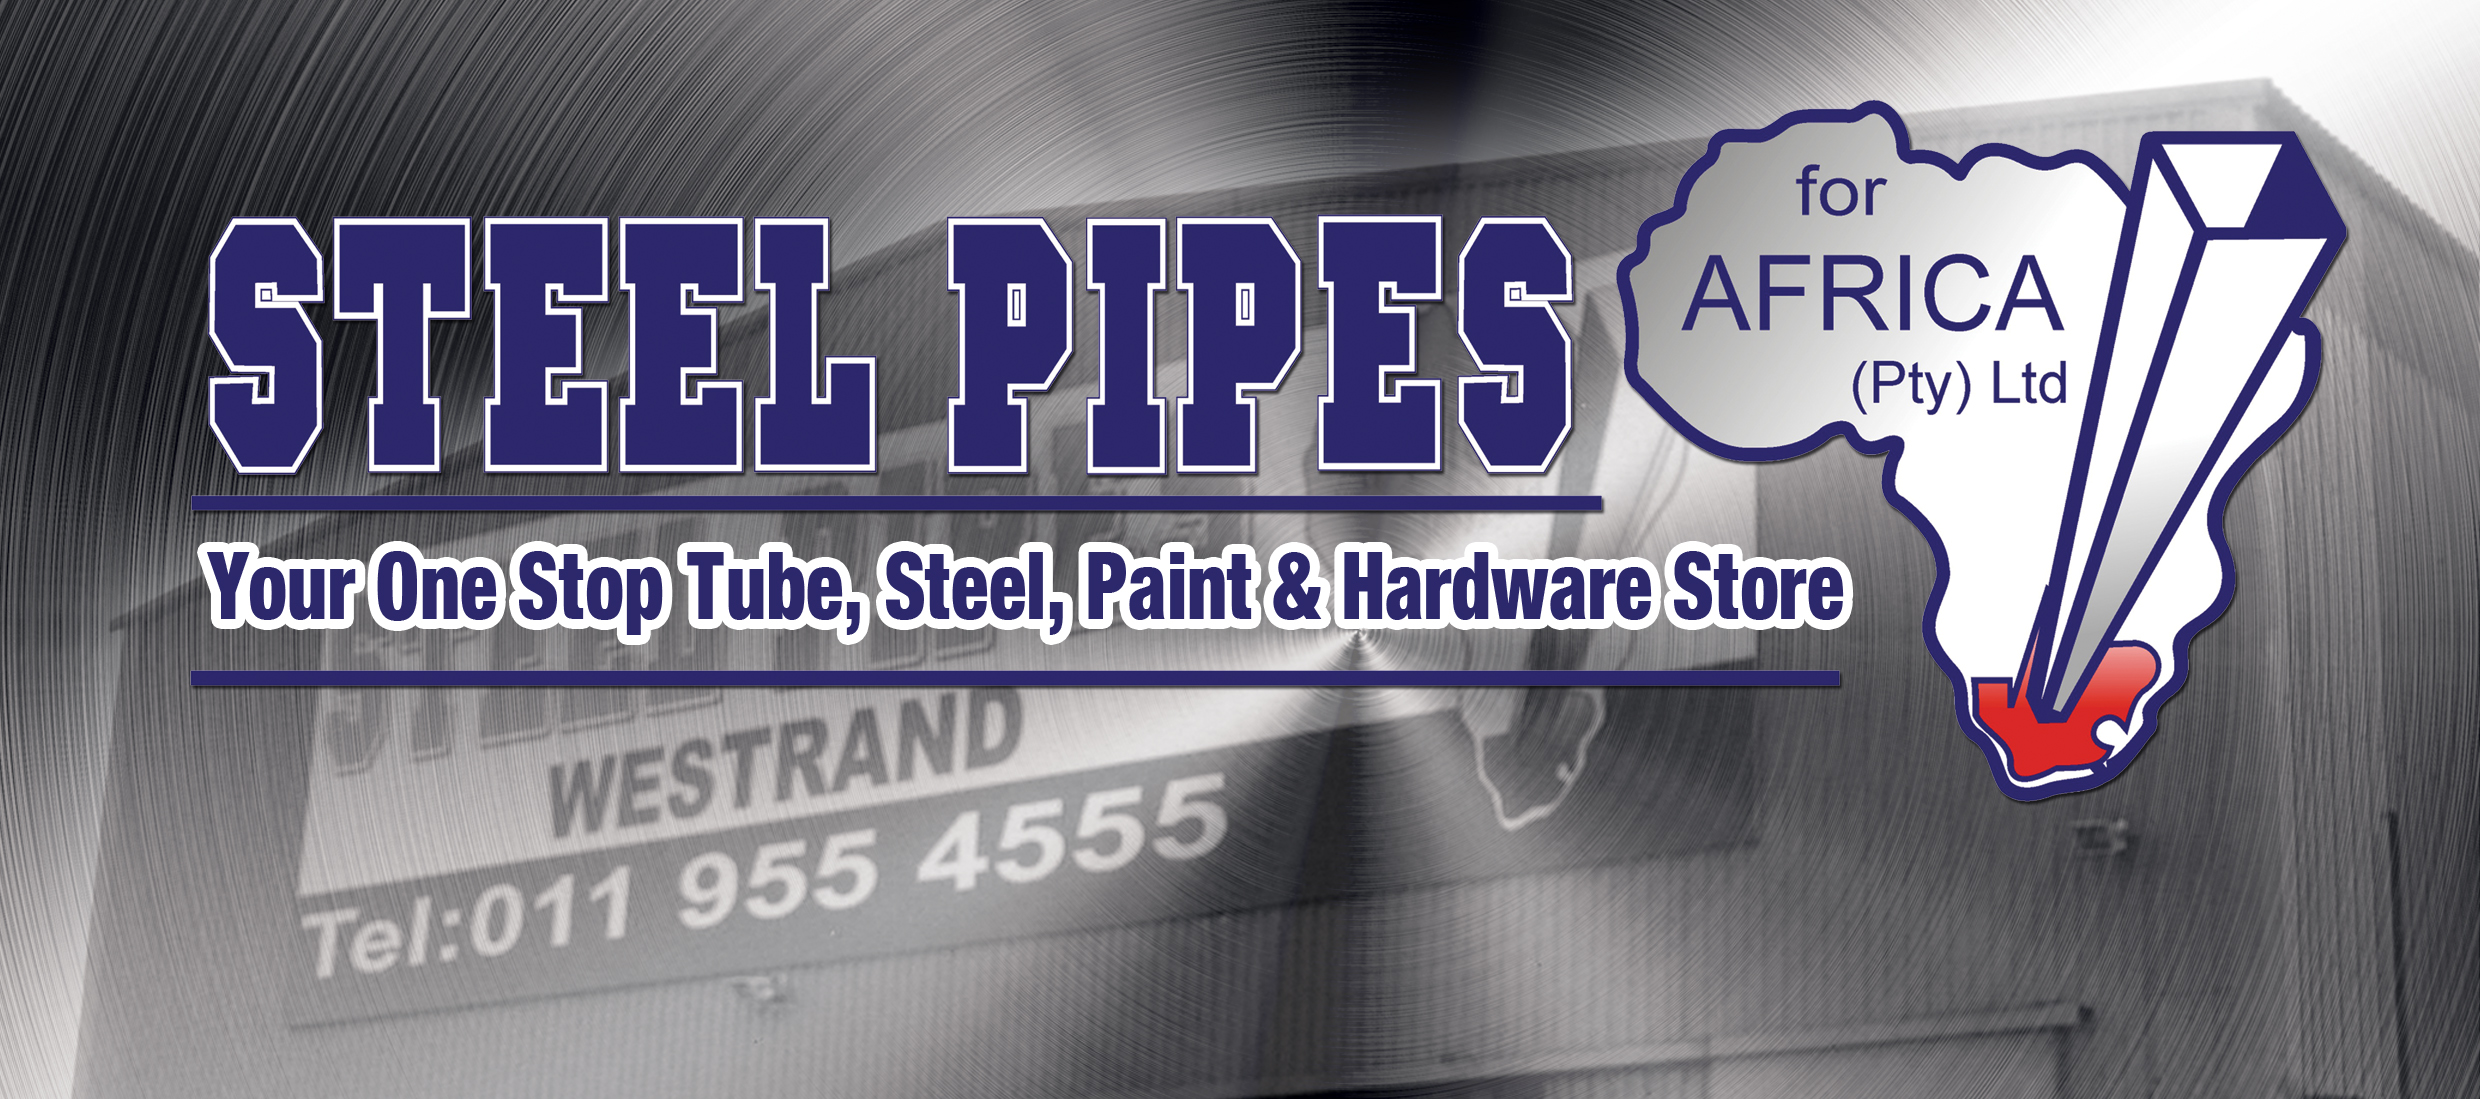 Steel Pipes Westrand – Your One Stop Tube, Steel, Paint